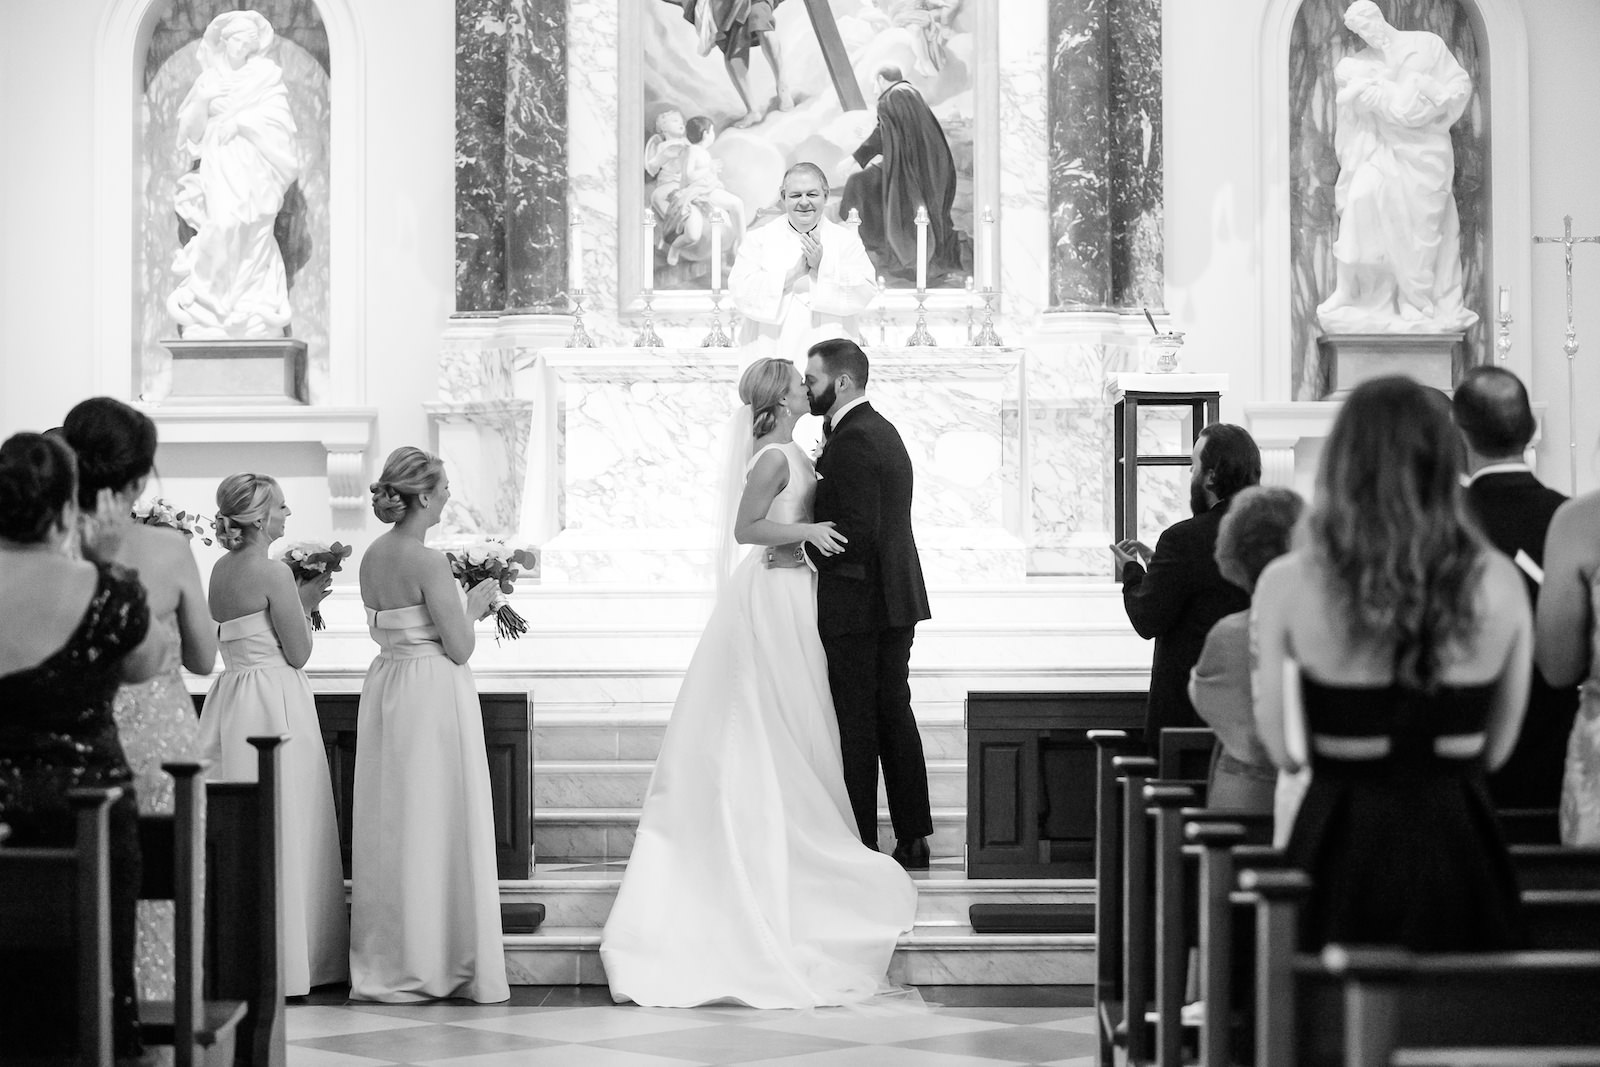 Black and White Wedding Photography | Bride and Groom First Kiss during Traditional Church Wedding Ceremony in Tampa